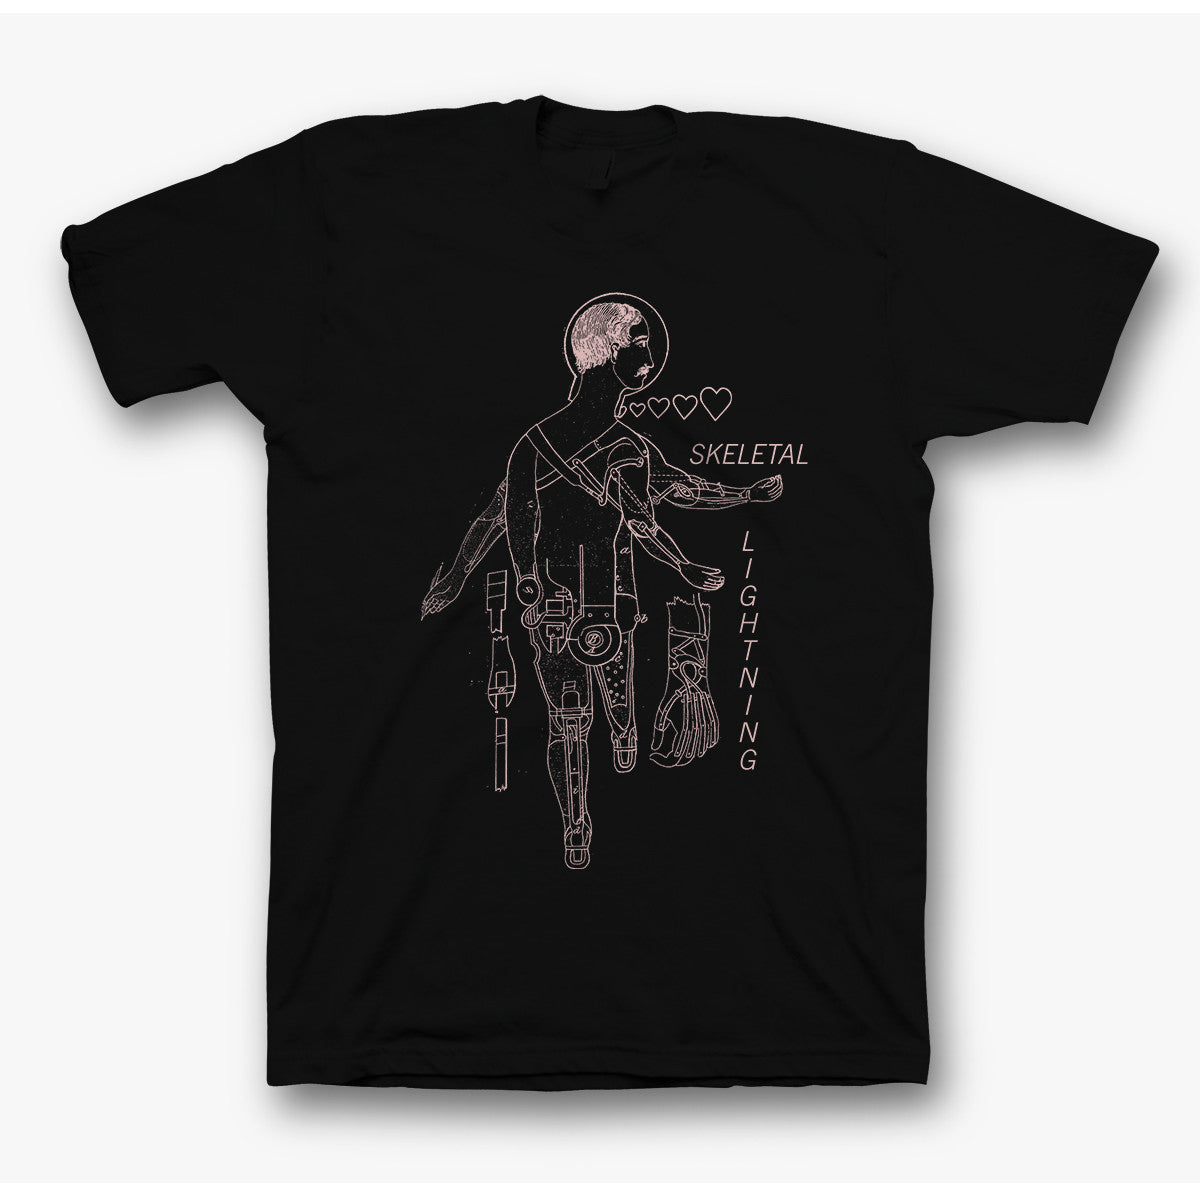 Skeletal Lightning - Cyborg T-shirt